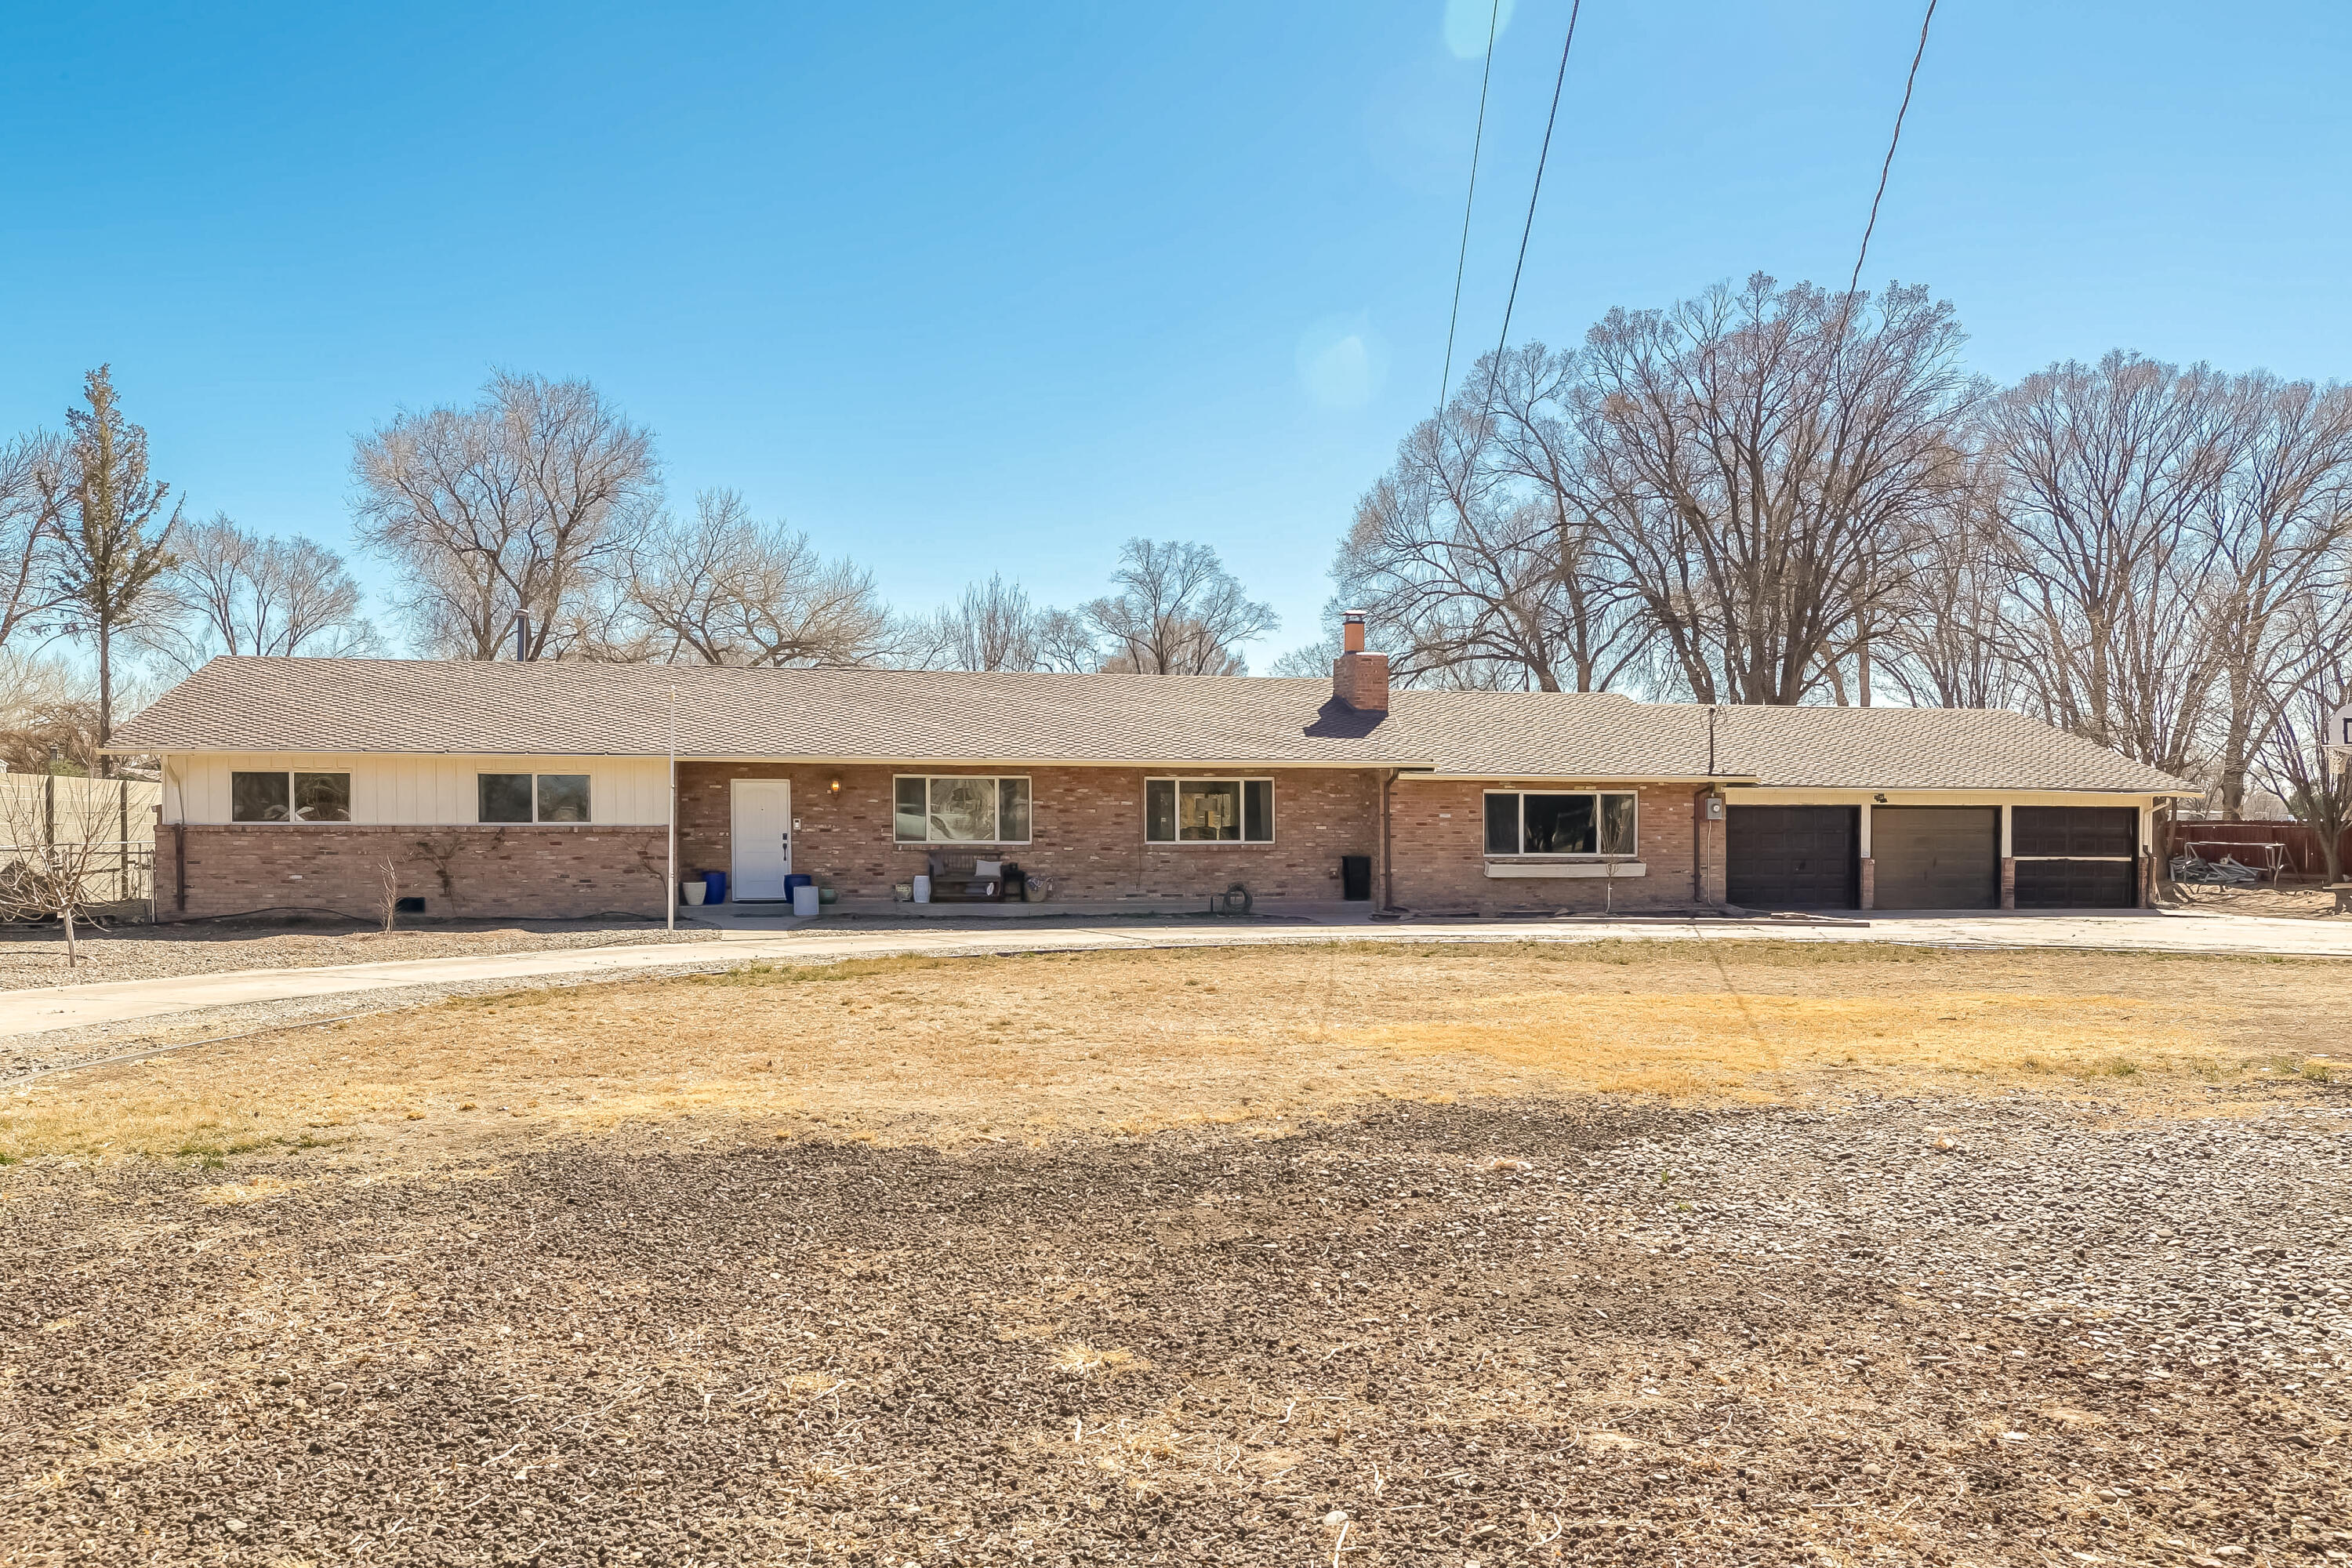 975 N BOSQUE Loop Property Photo - Bosque Farms, NM real estate listing